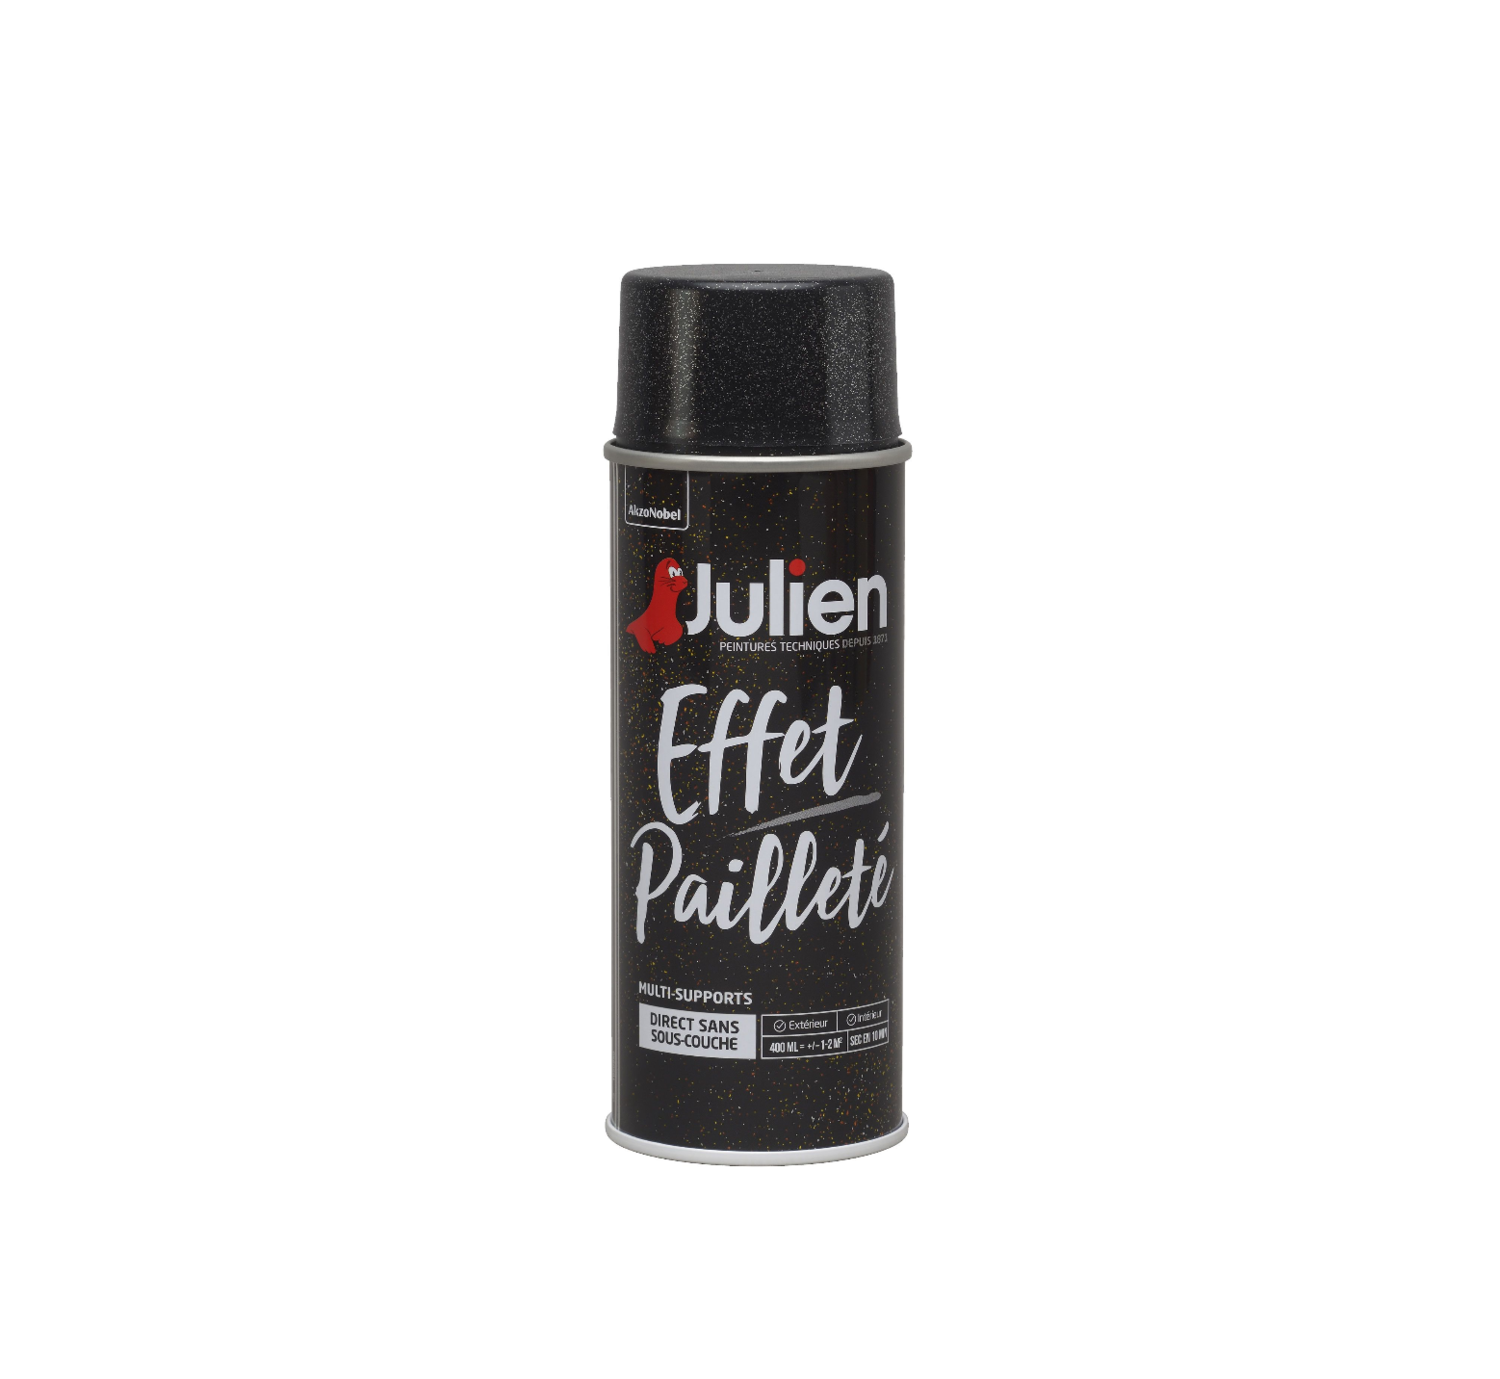 JULIEN PEINTURE EFFET PAILLETTE ARGENT MULTI-SUPPORTS 3031520200776 PRO 400 ML SPRAY PAINT DECORATION ART BRICOLAGE RENOVATION RENOVER BOMBE COMASOUND KARTEL CSK ONLINE